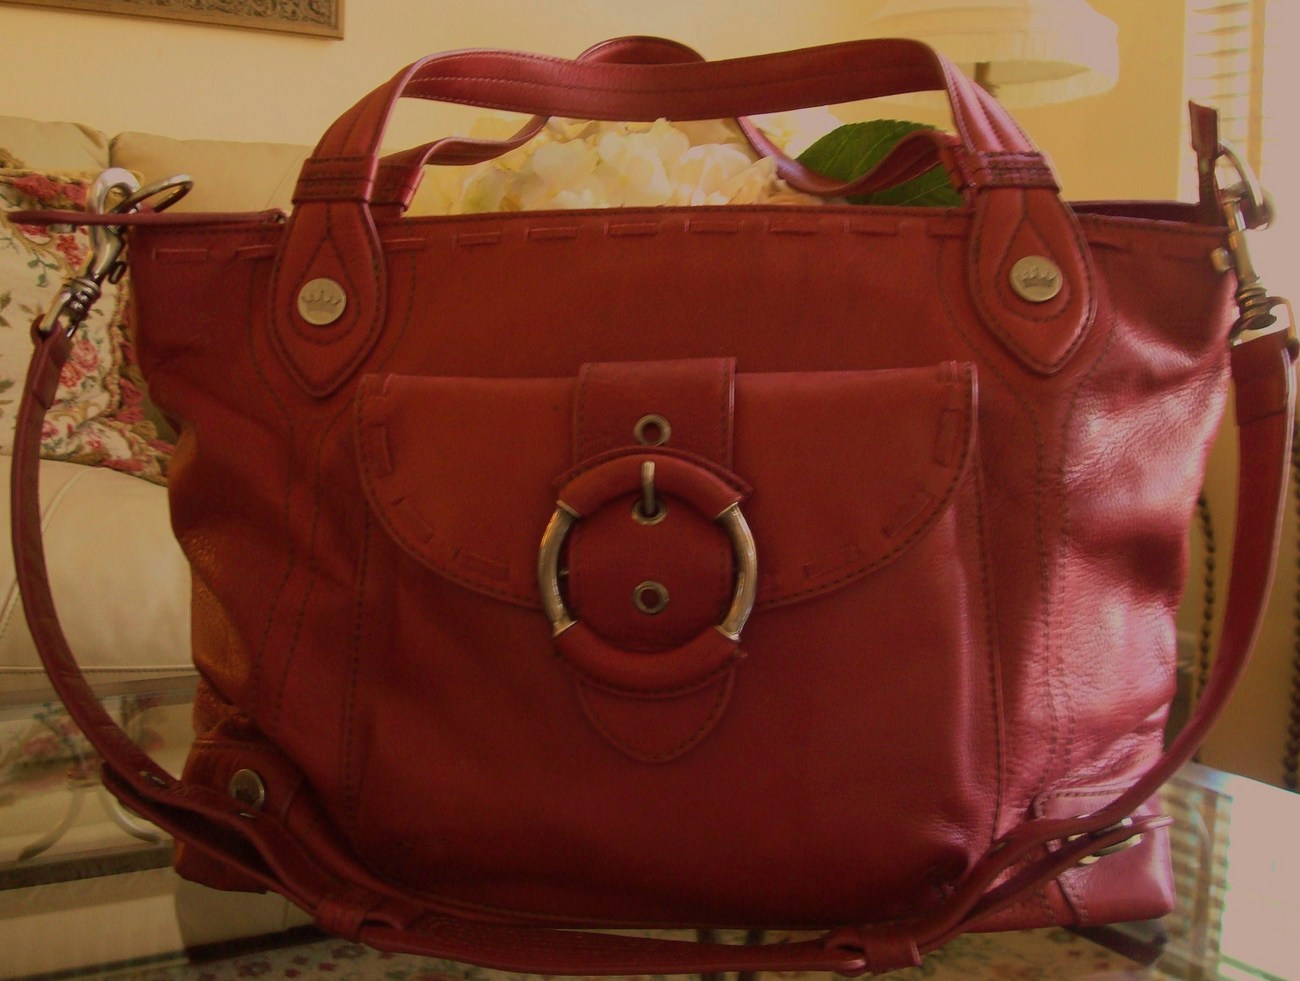 Primary image for Elaine Turner Large Tote Bag Red NWOT $500 Retail